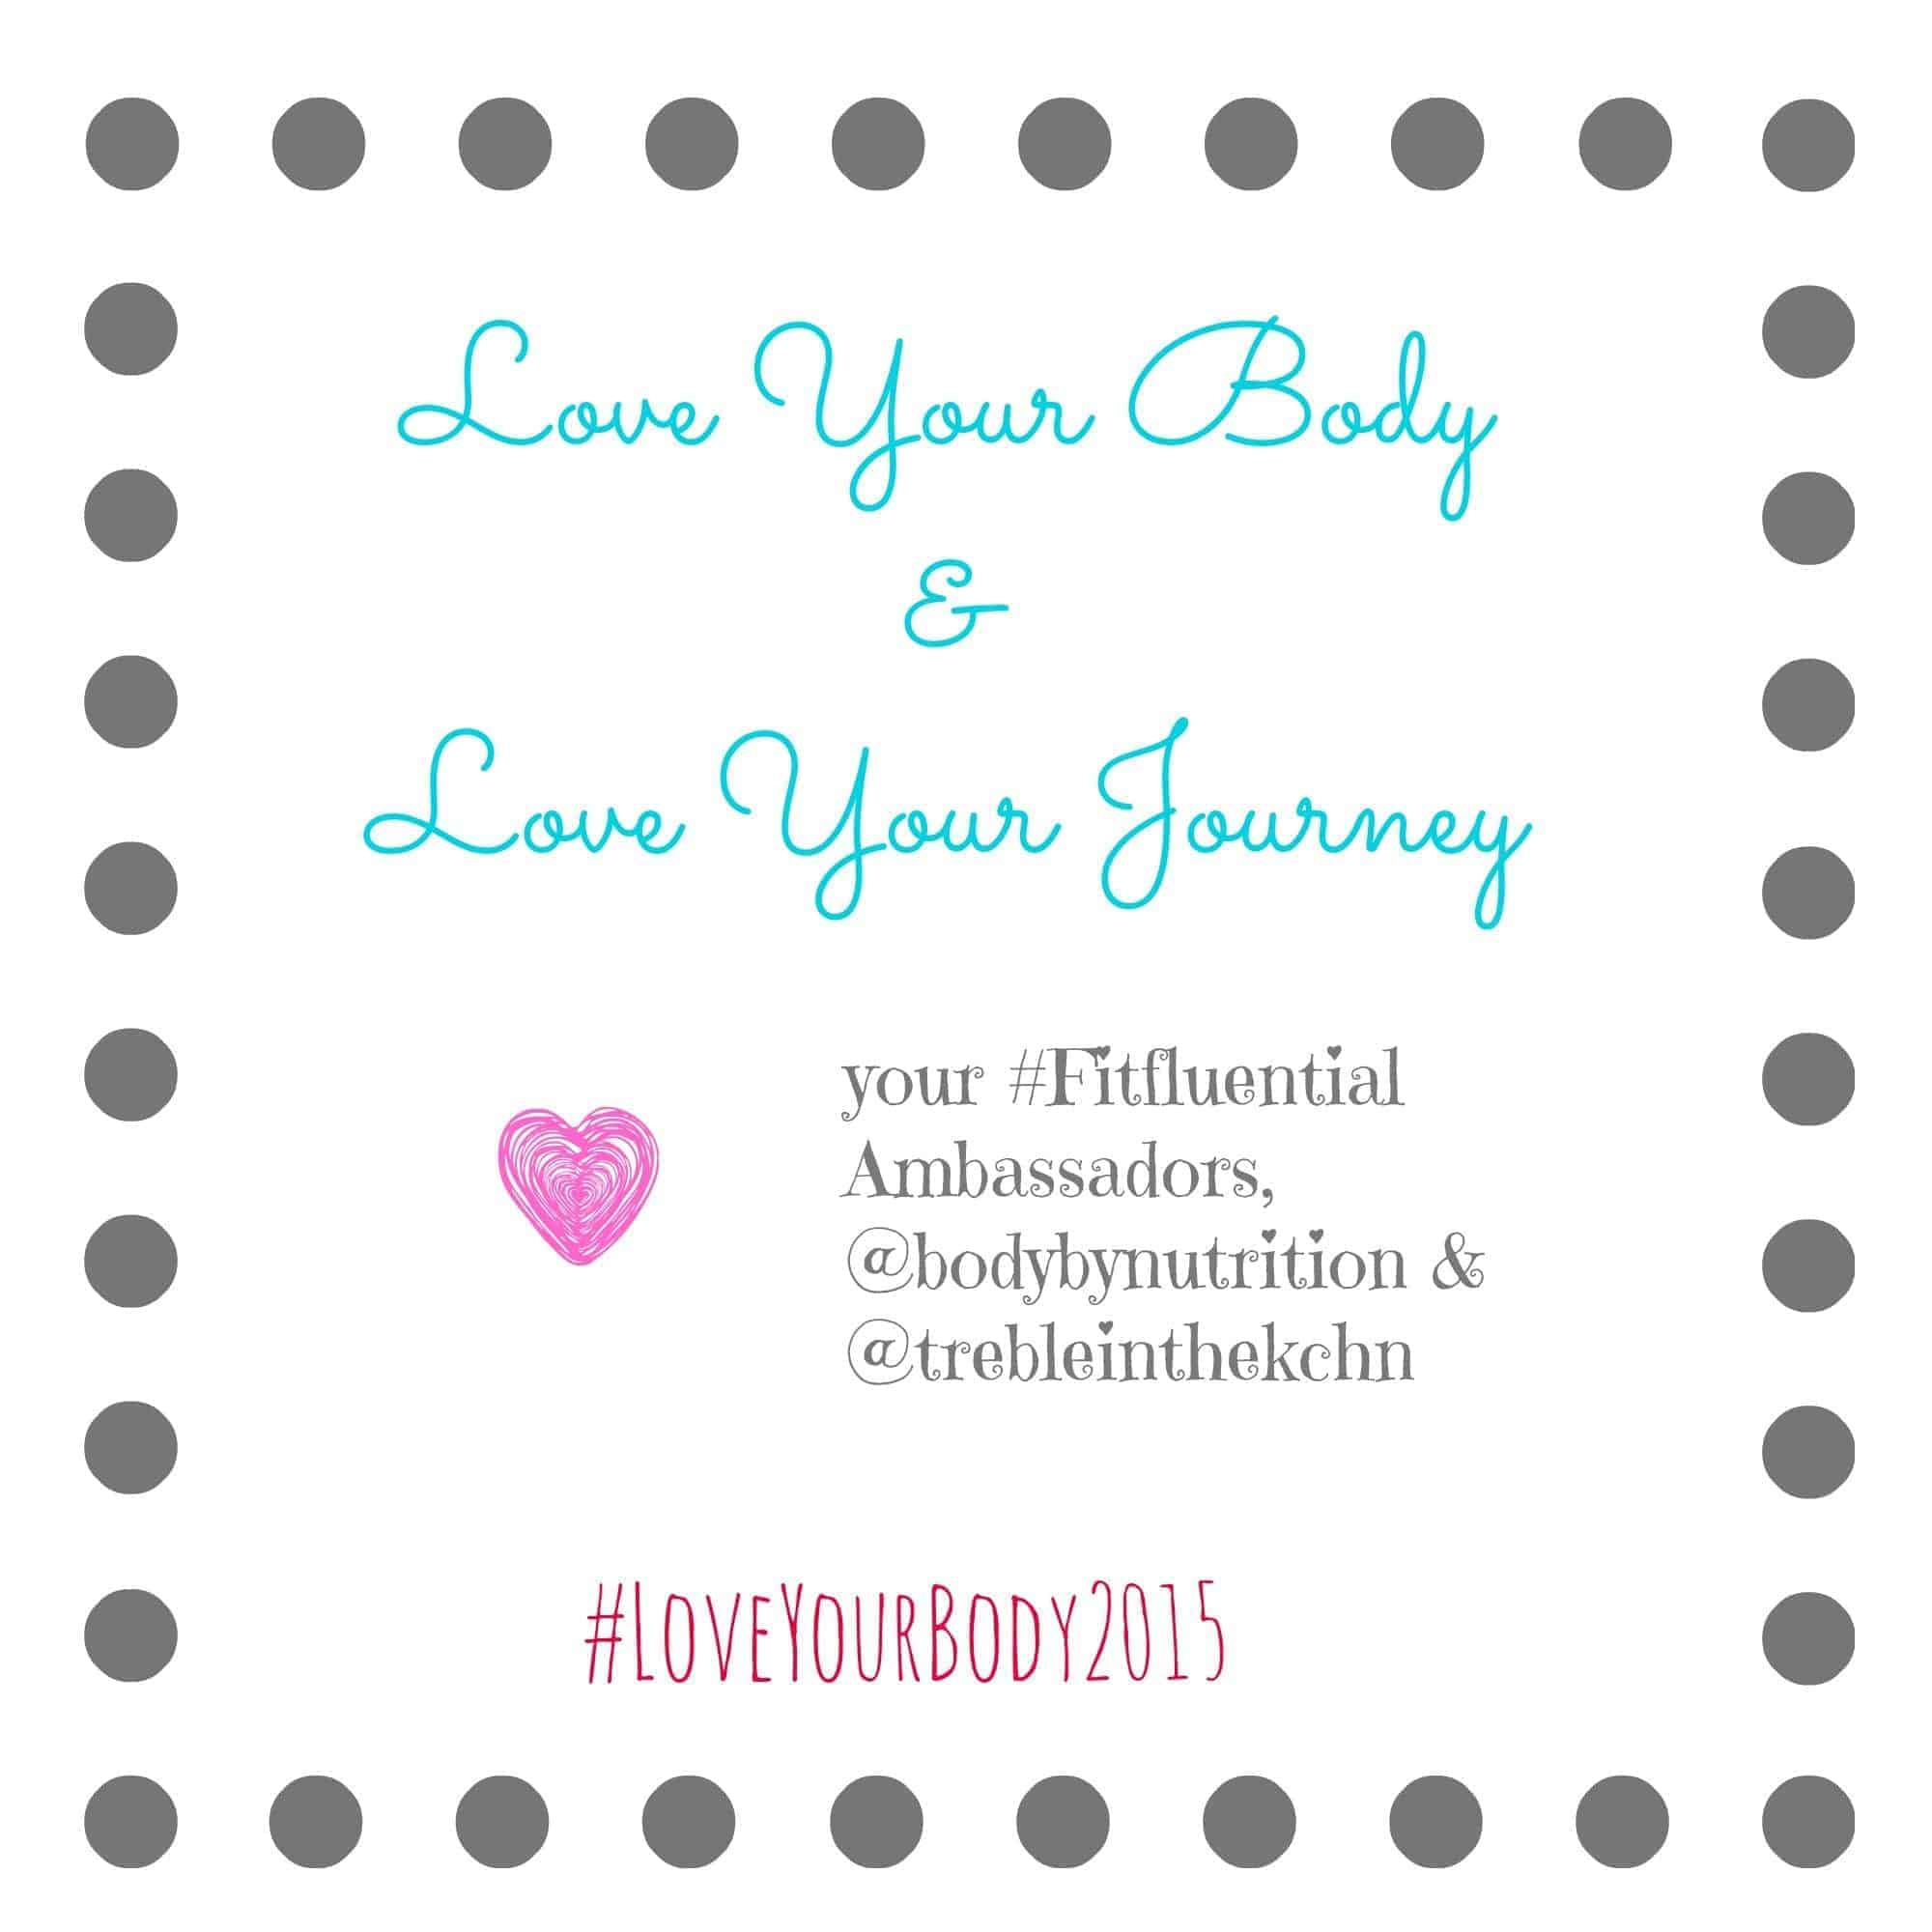 Love Your Body Challenge 2015